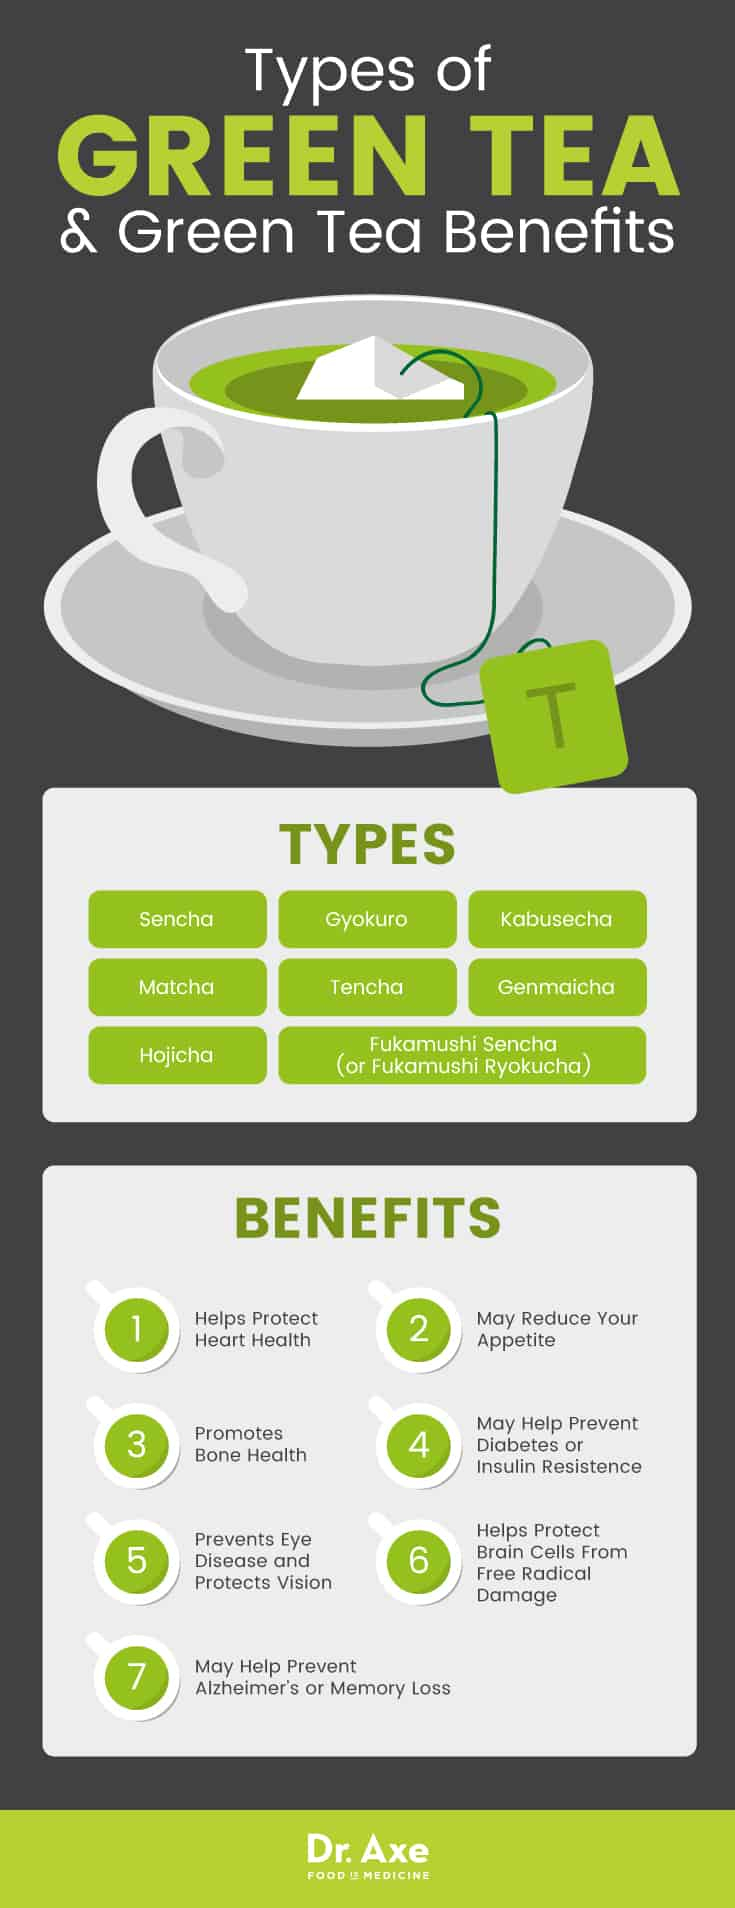 Types of green tea + green tea benefits - Dr. Axe